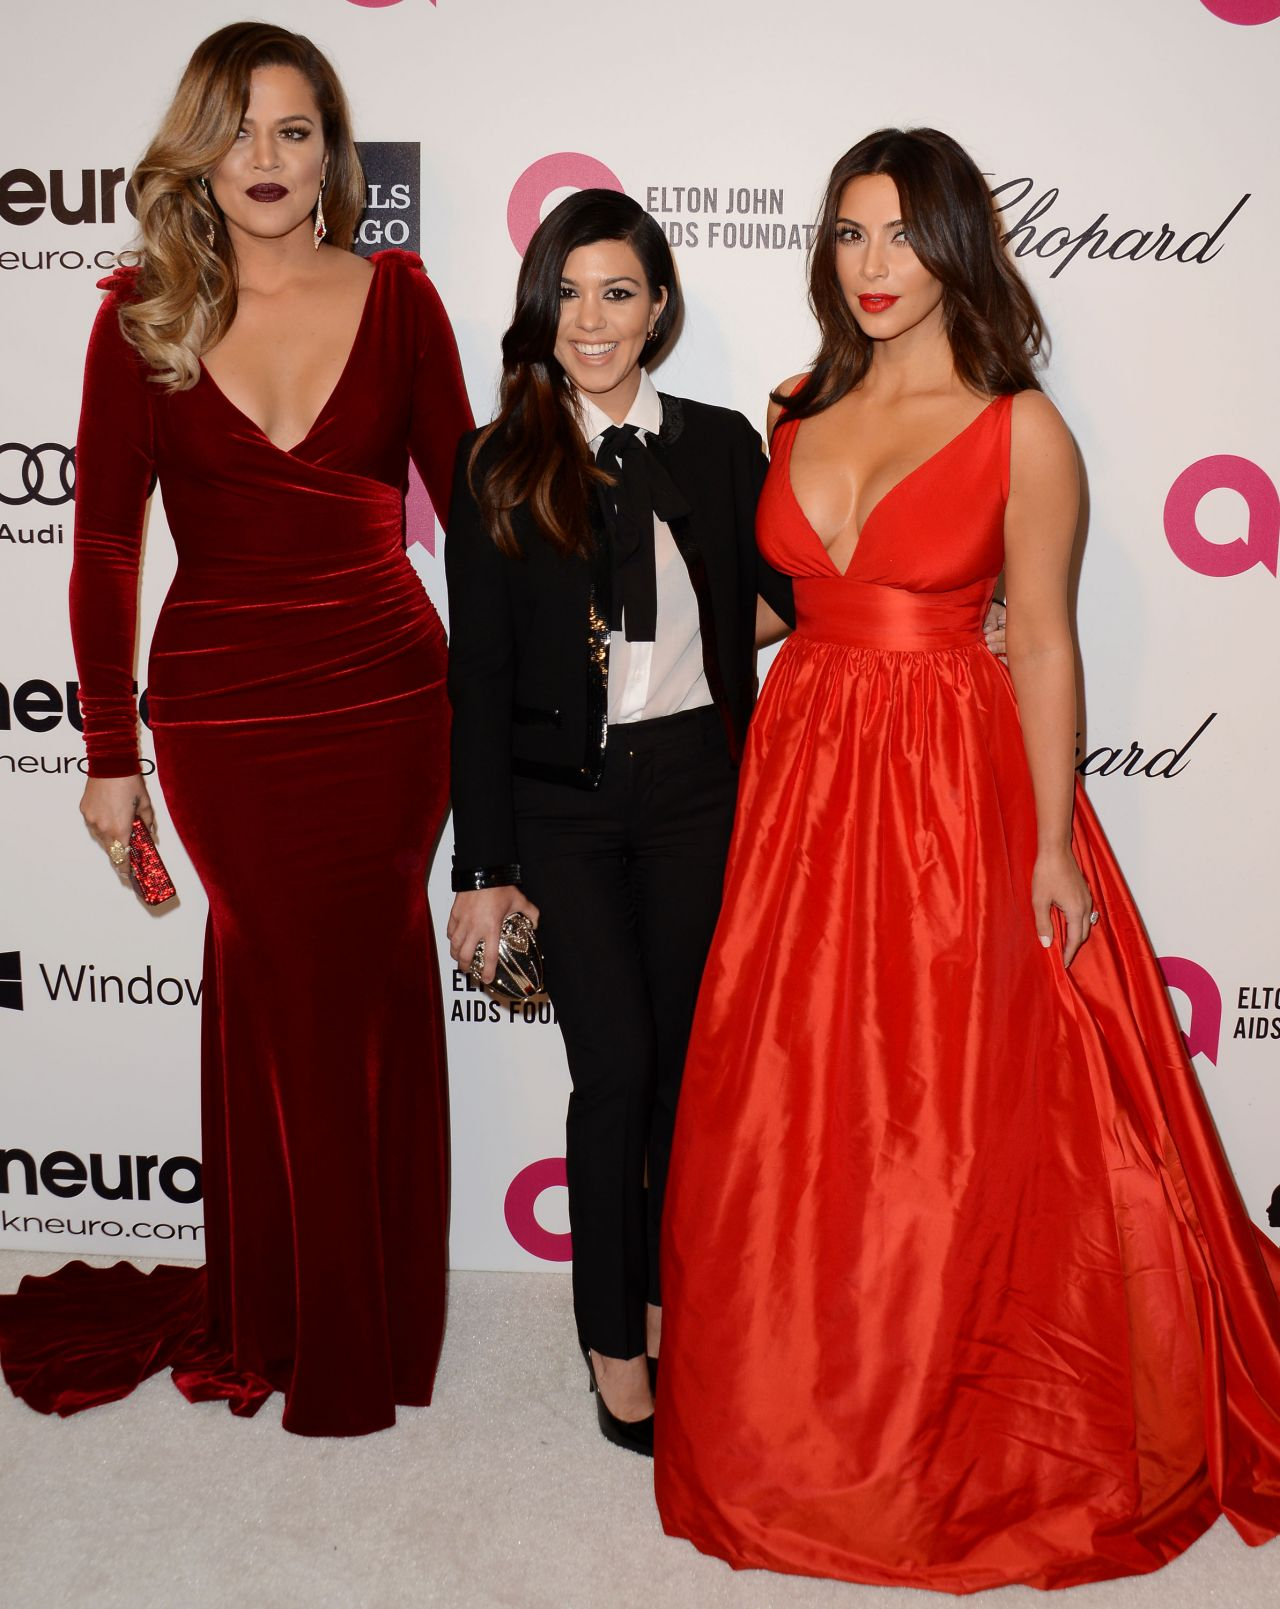 Khloe, Kim, Kourtney Kardashian - 2014 Elton John Oscar Party